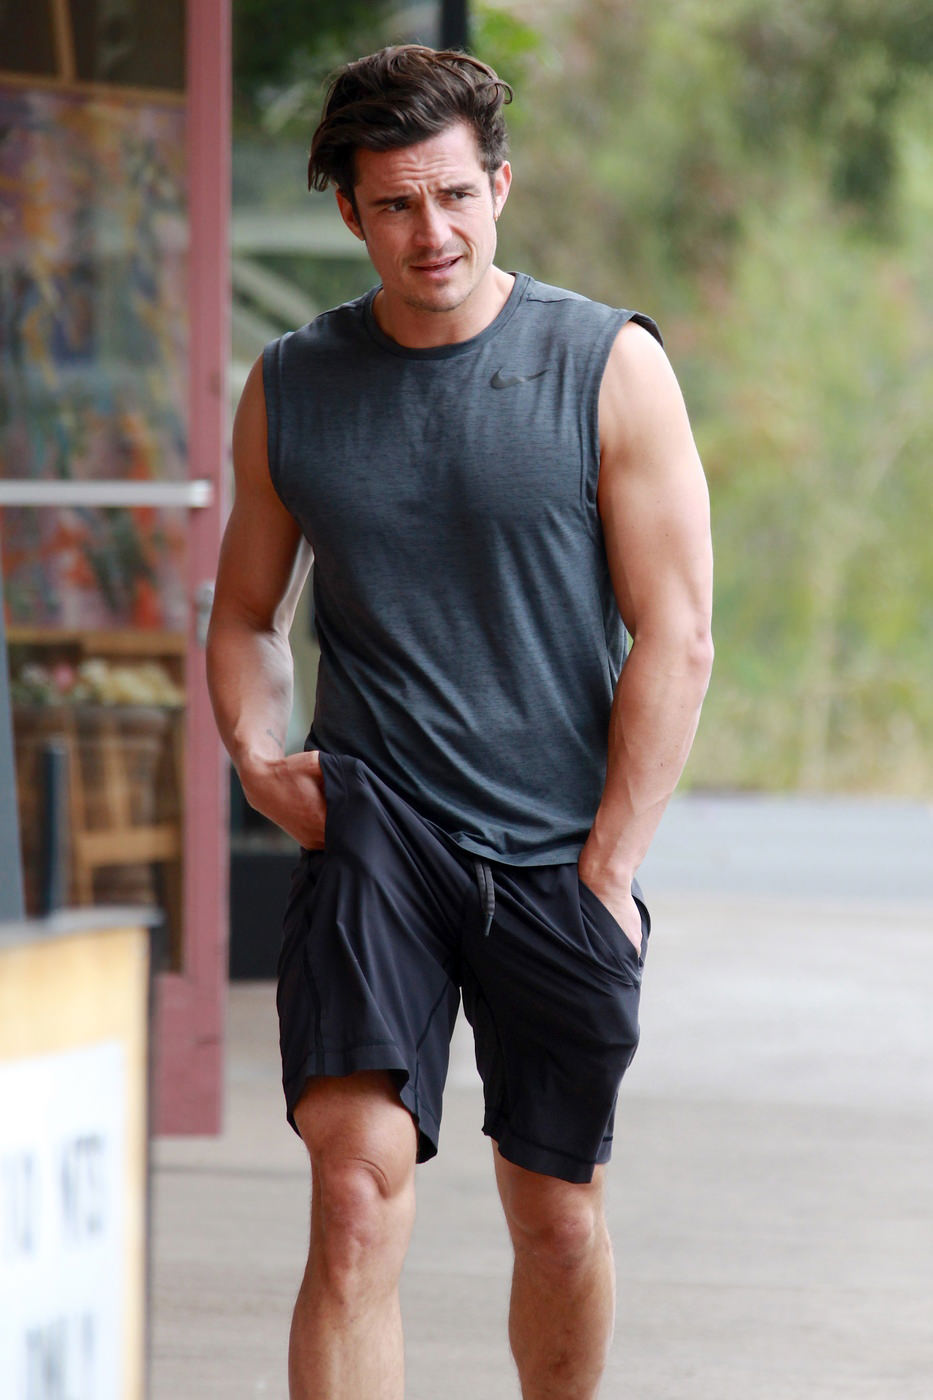 Orlando Bloom Does Some Heavy Lifting at the Gym | Tom ... Orlando Bloom